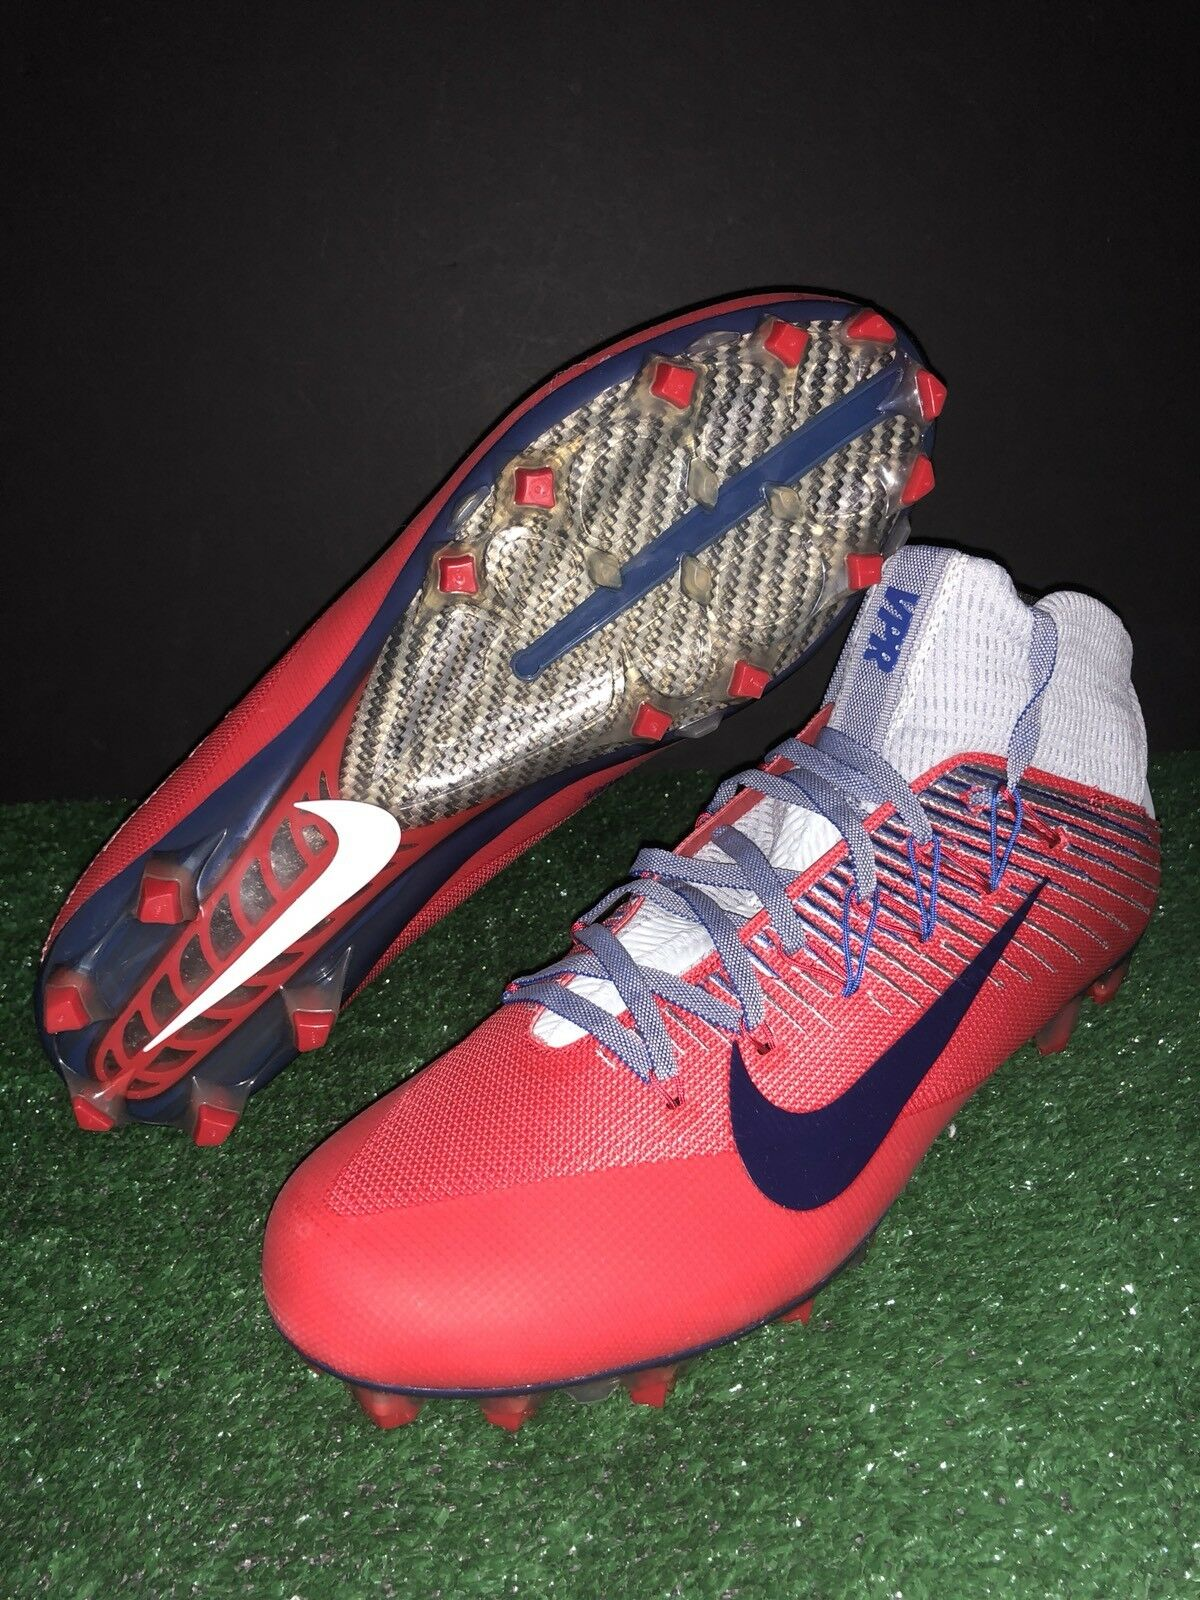 cba96b58121 NIKE UNTOUCHABLE 2 FOOTBALL CLEATS 835646-021 RED blueE GREY NY GIANTS MENS  13